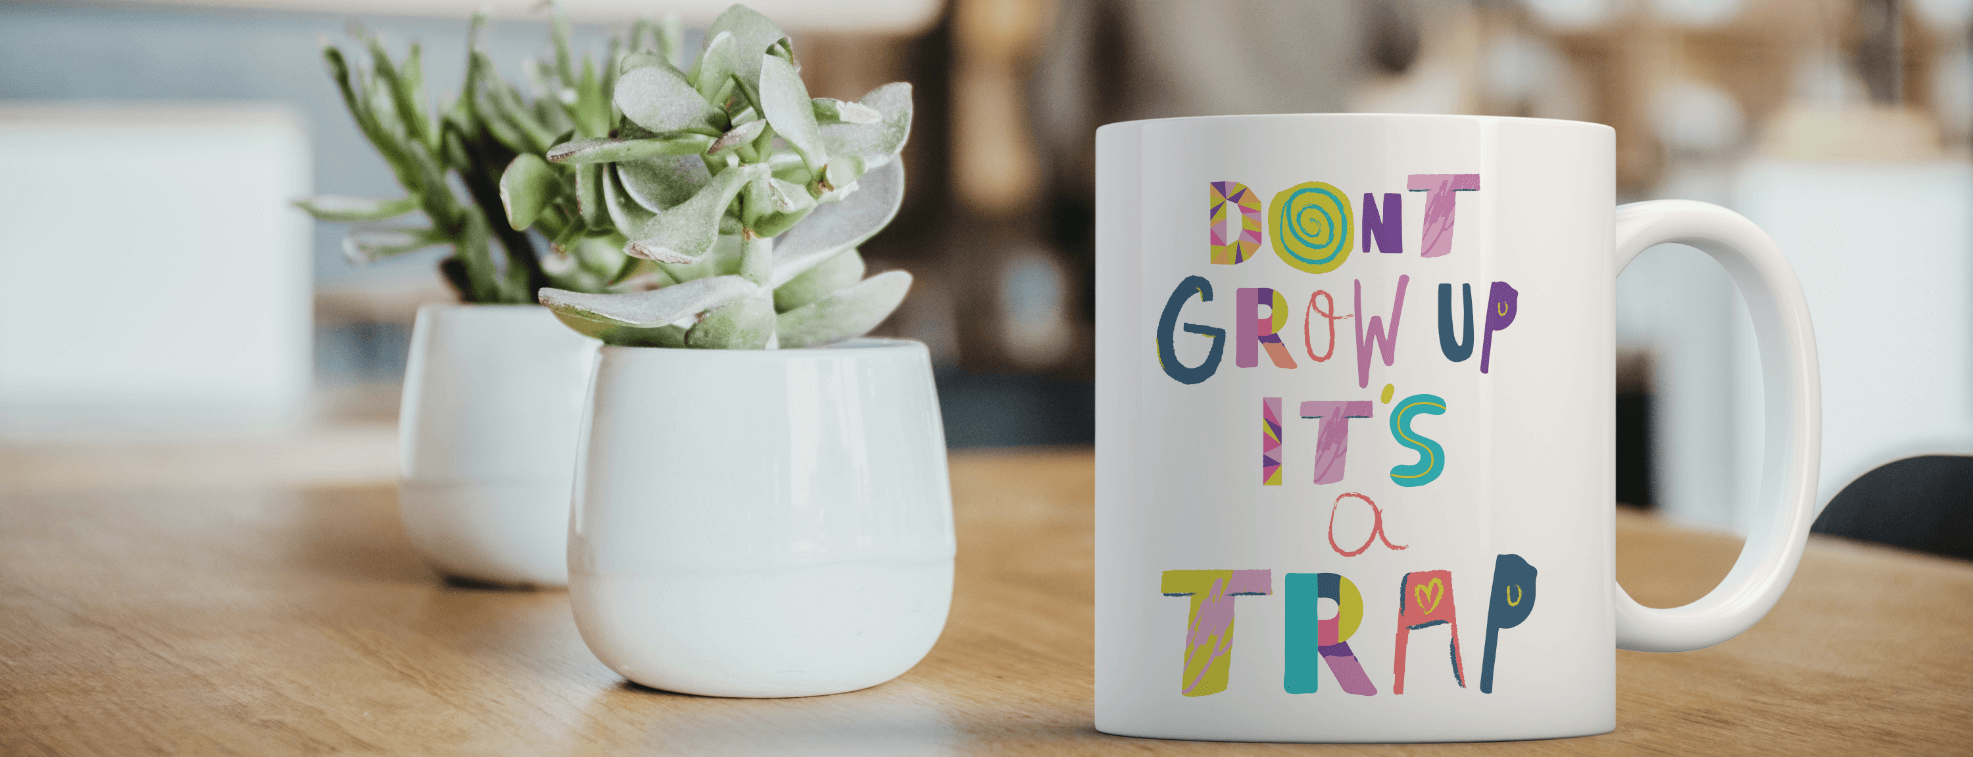 "Cool custom white mug on a table with ""Don't grow up it's a trap"" written on it"